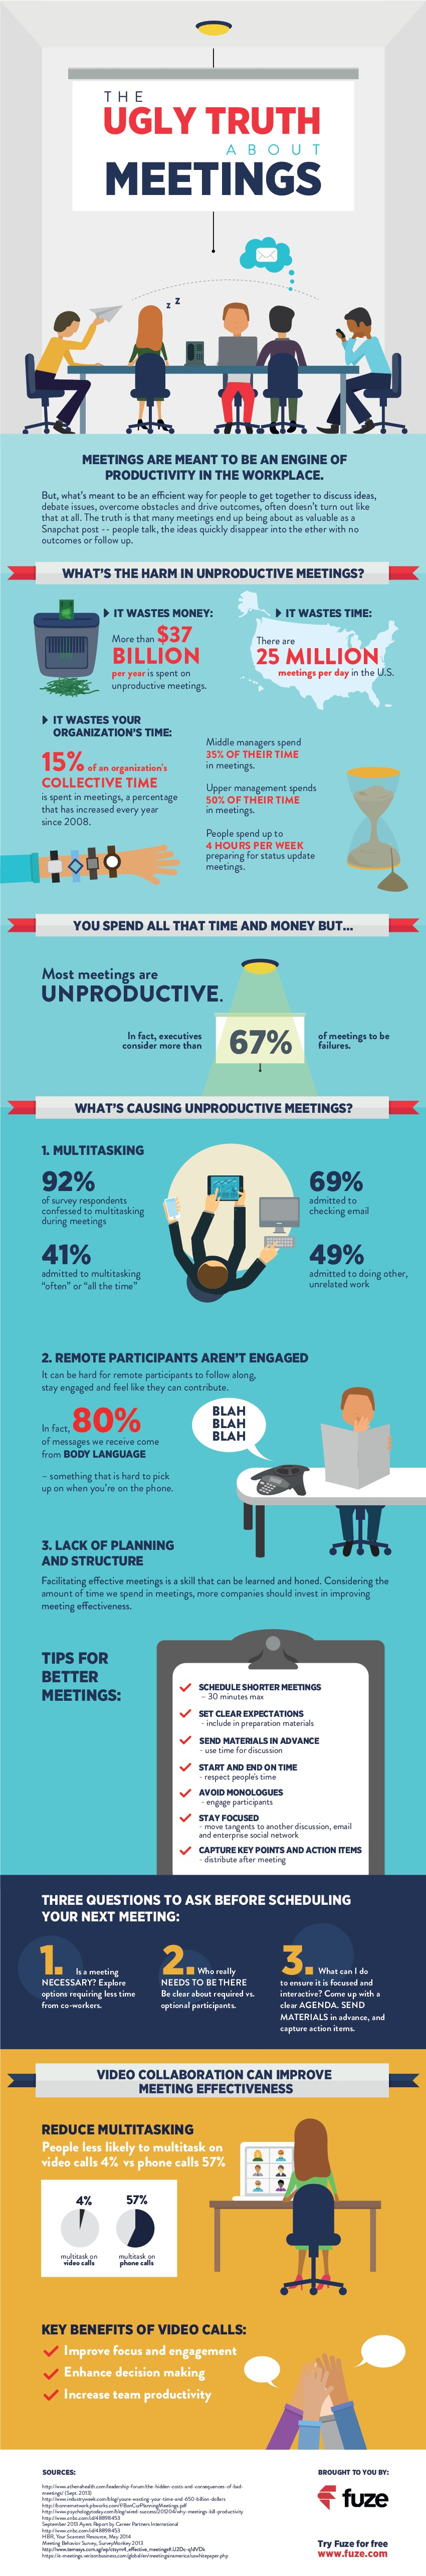 Meetings [INFOGRAPHIC]